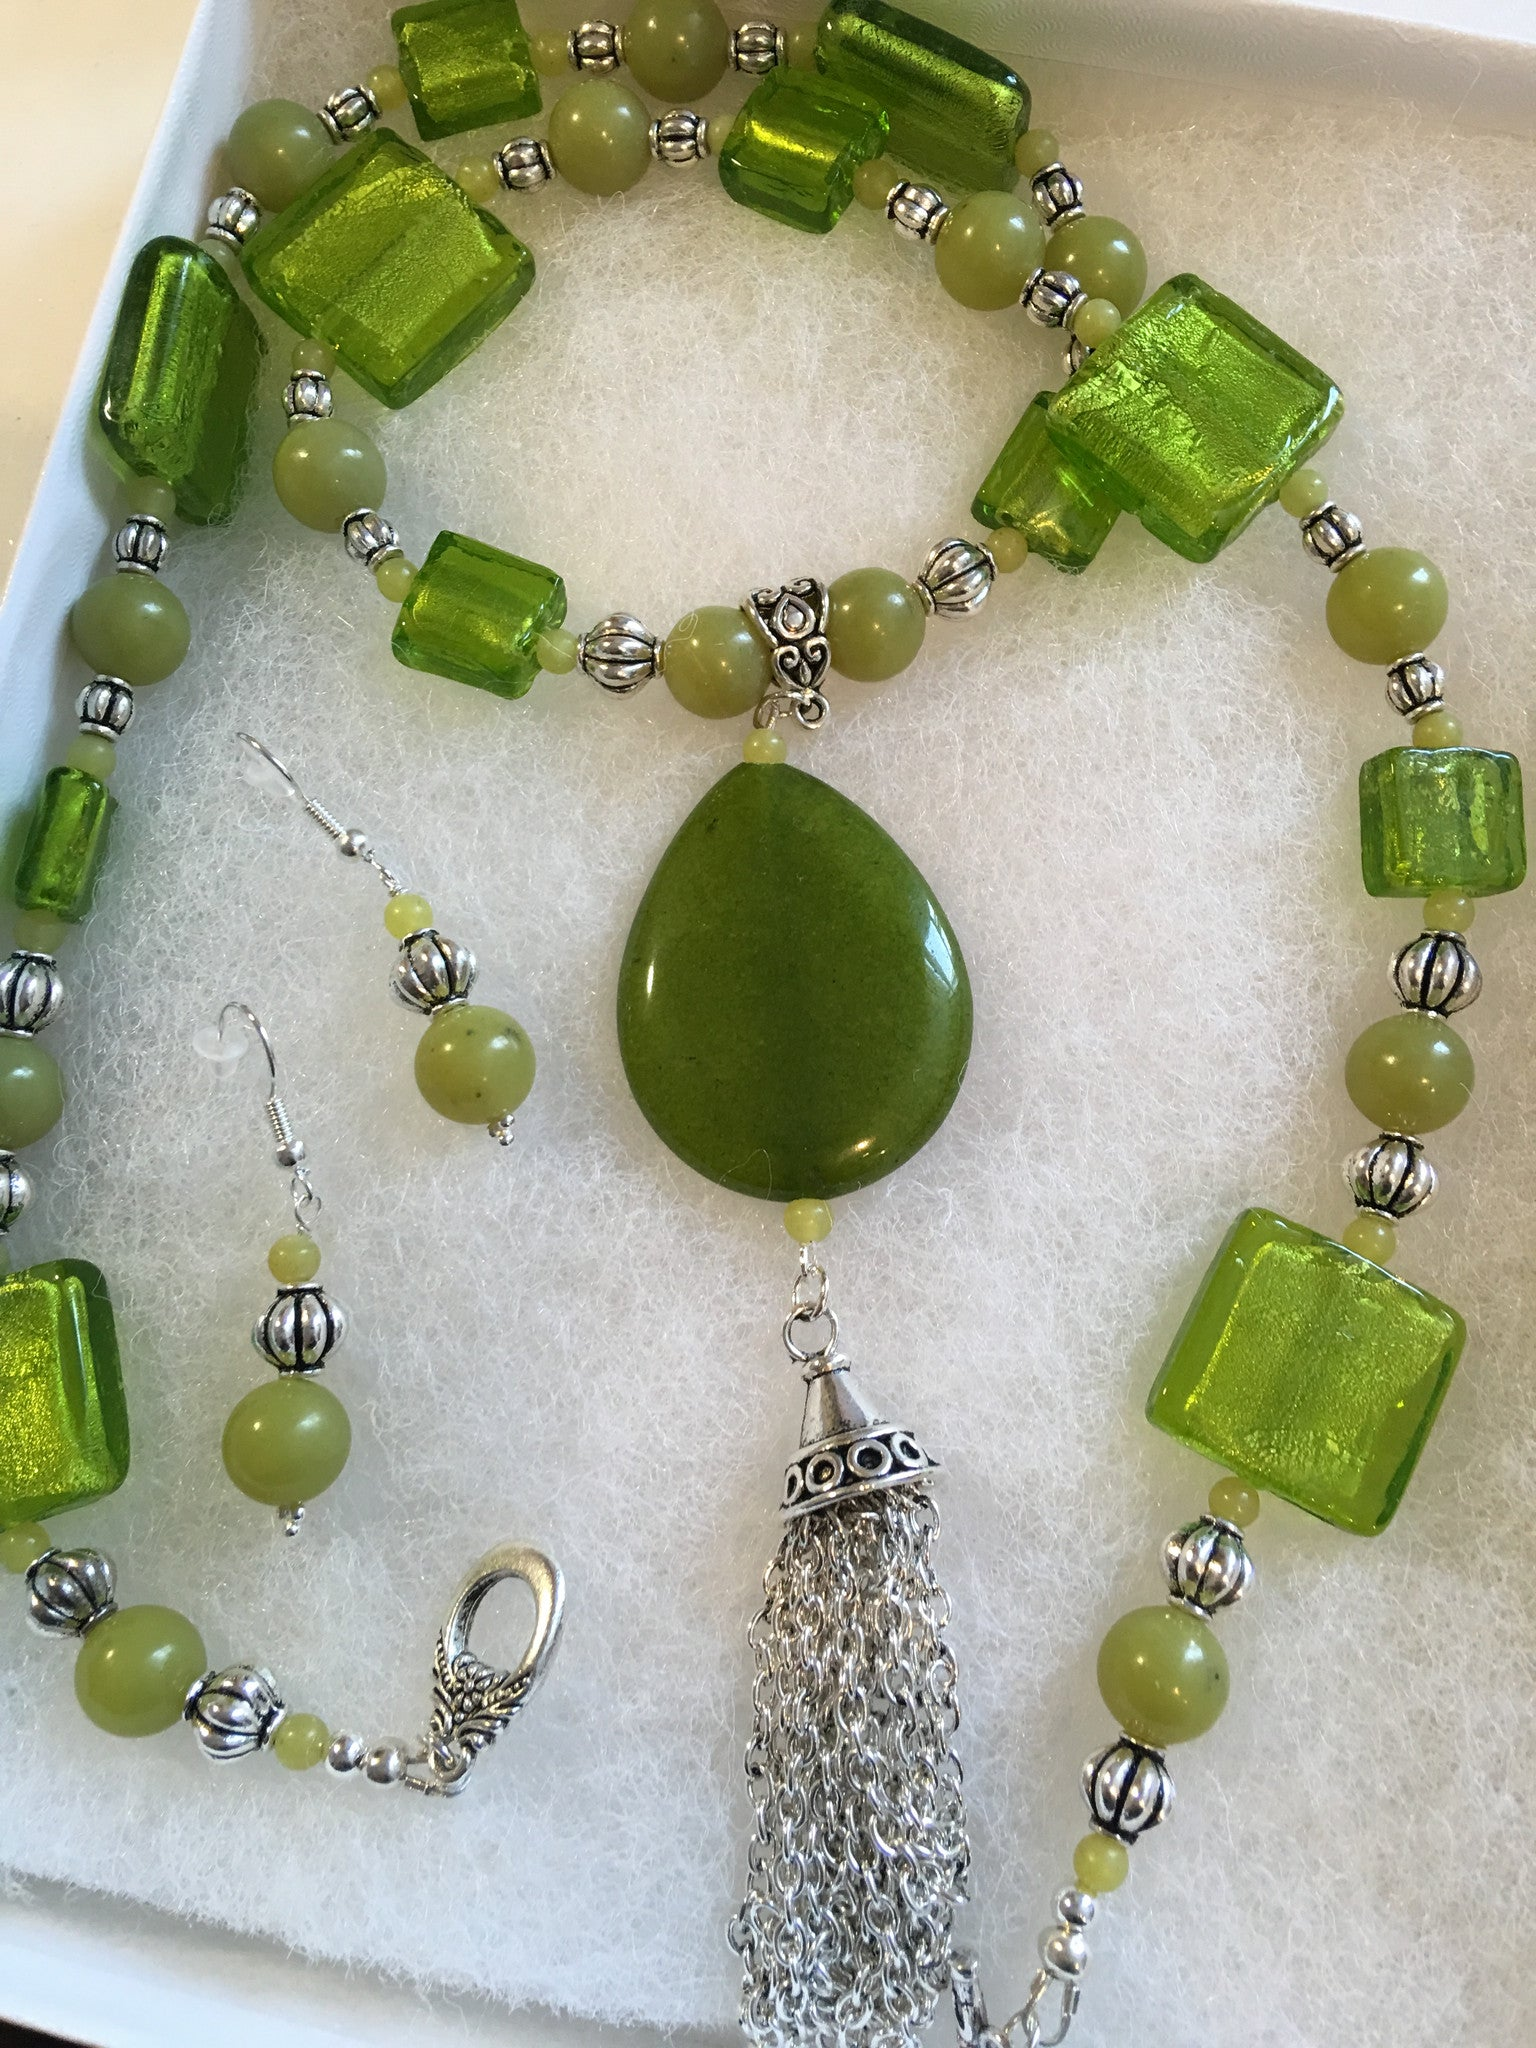 Genuine Jade Pendant with Jade Beads & Hand Made Foil Faced Glass Beads.